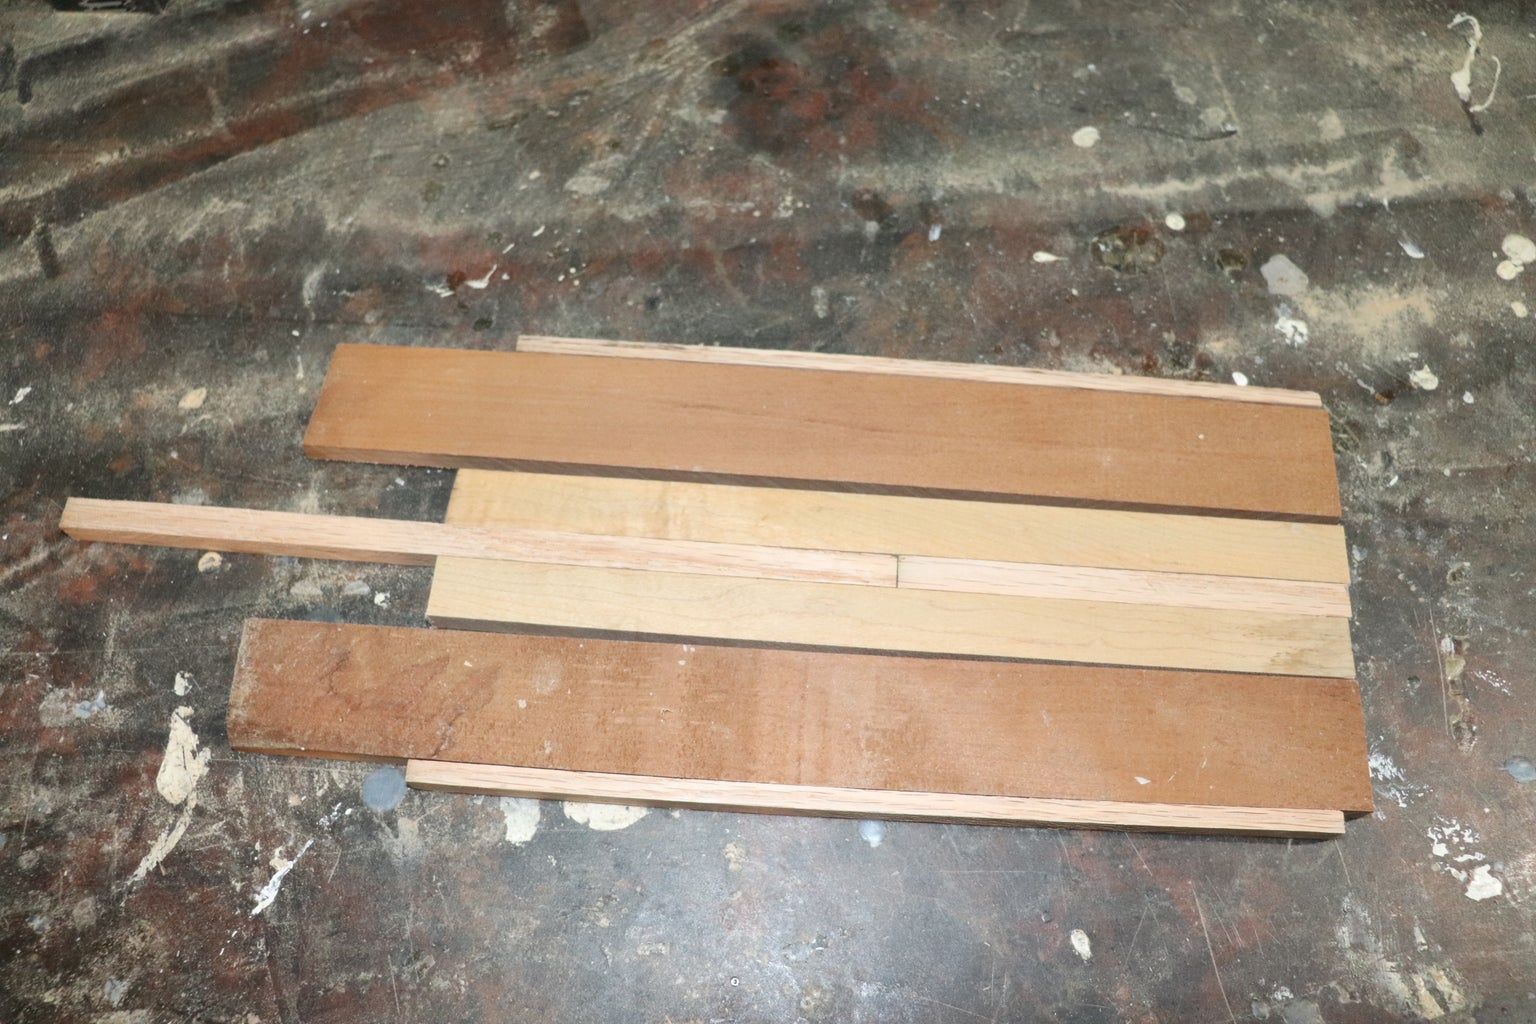 Cutting and Gluing the Stock